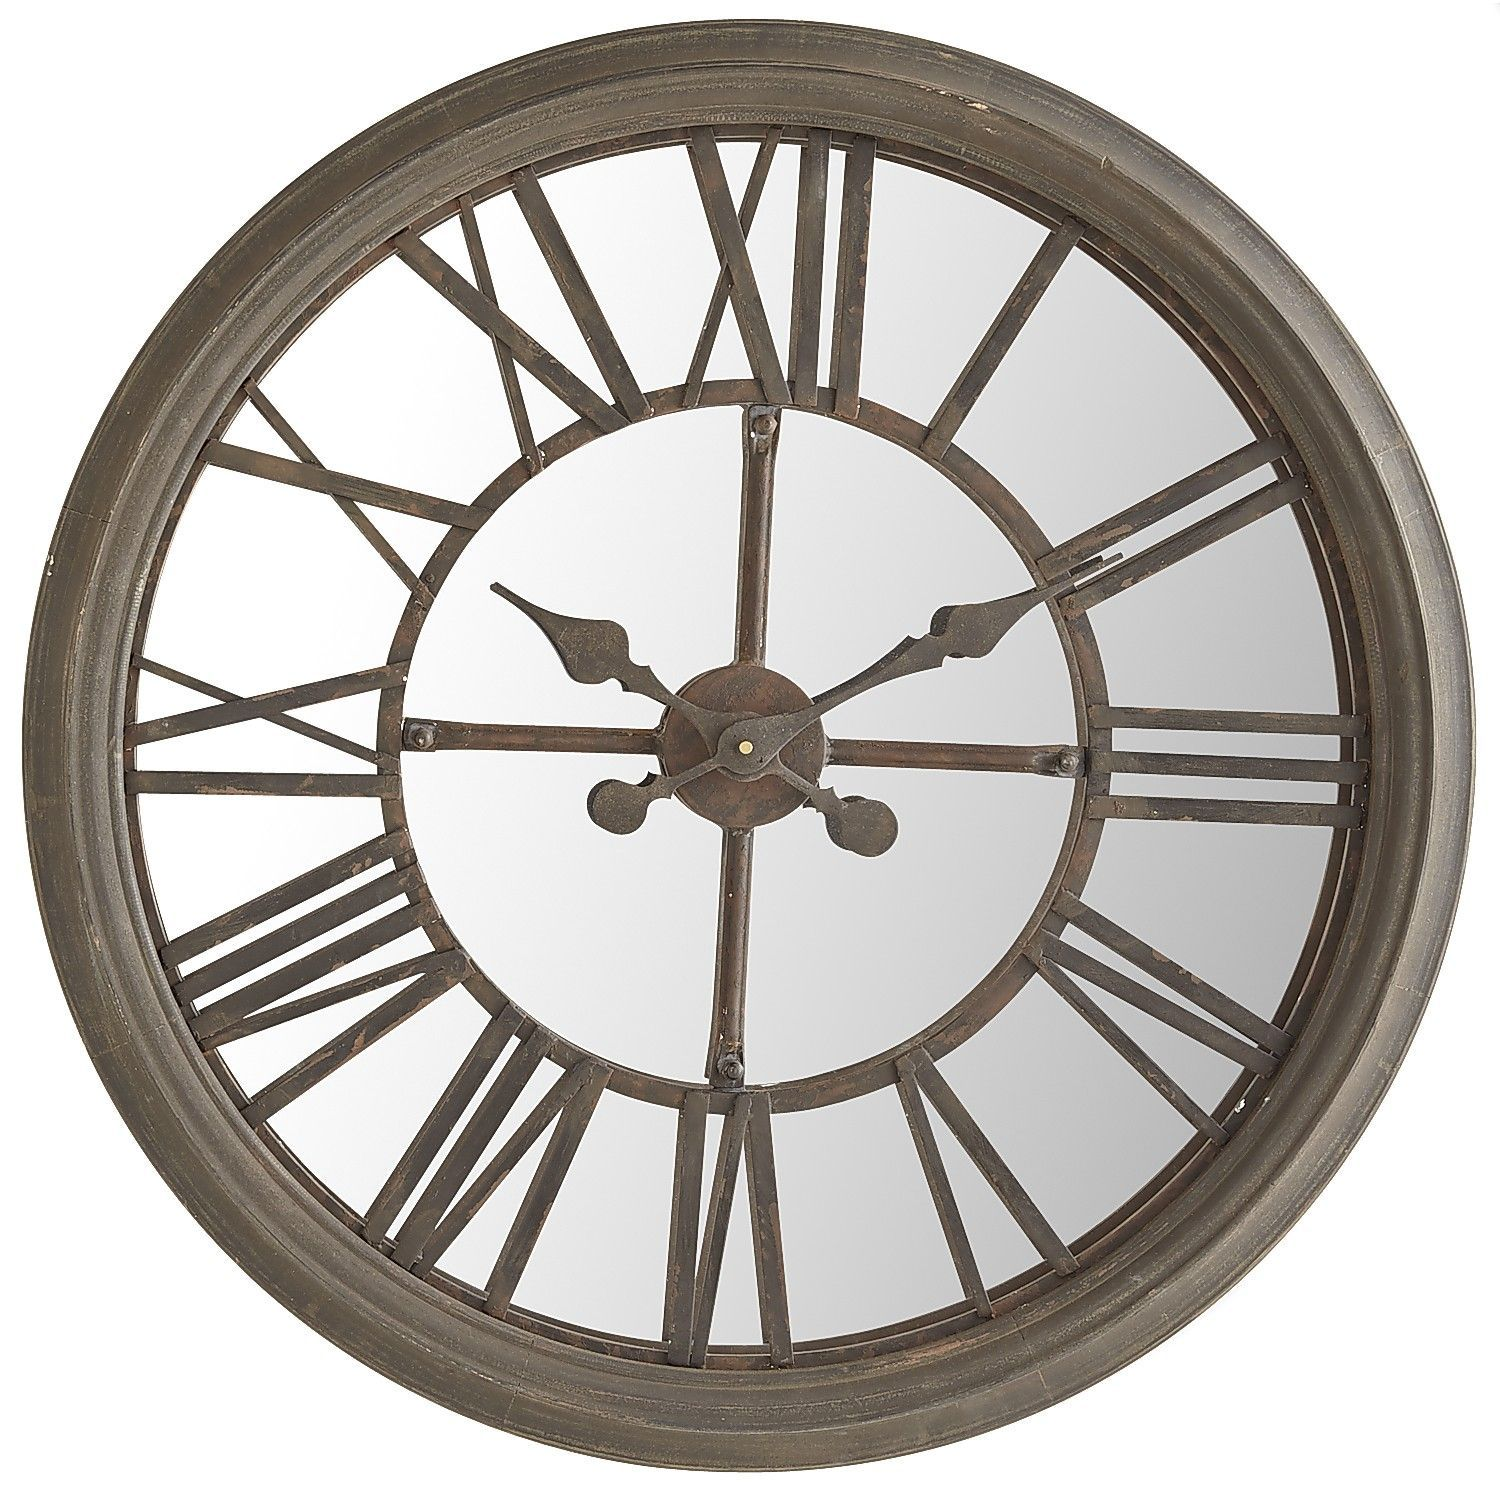 Rustic Mirrored Wall Clock Mirror Wall Clock Wall Clock Rustic Wall Clocks